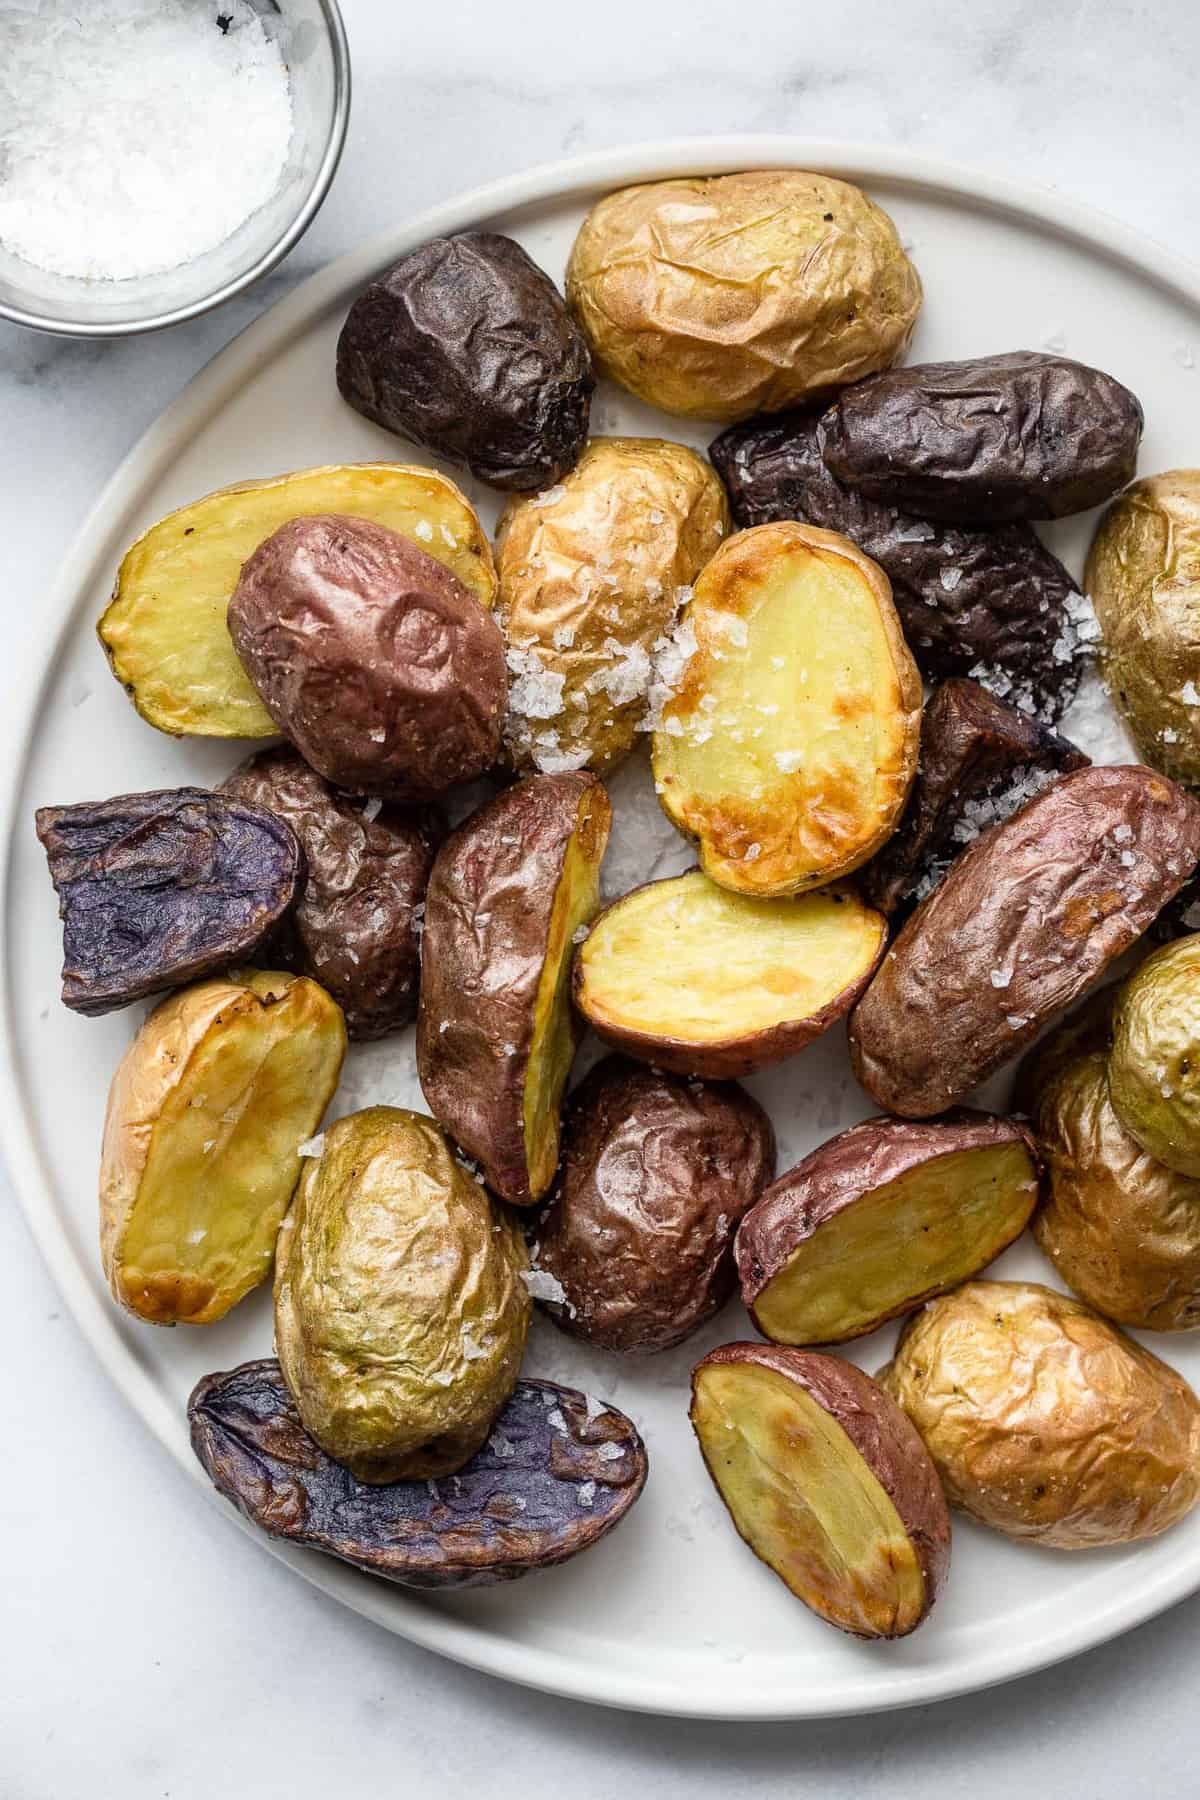 colorful air fryer roasted potatoes on a gray plate